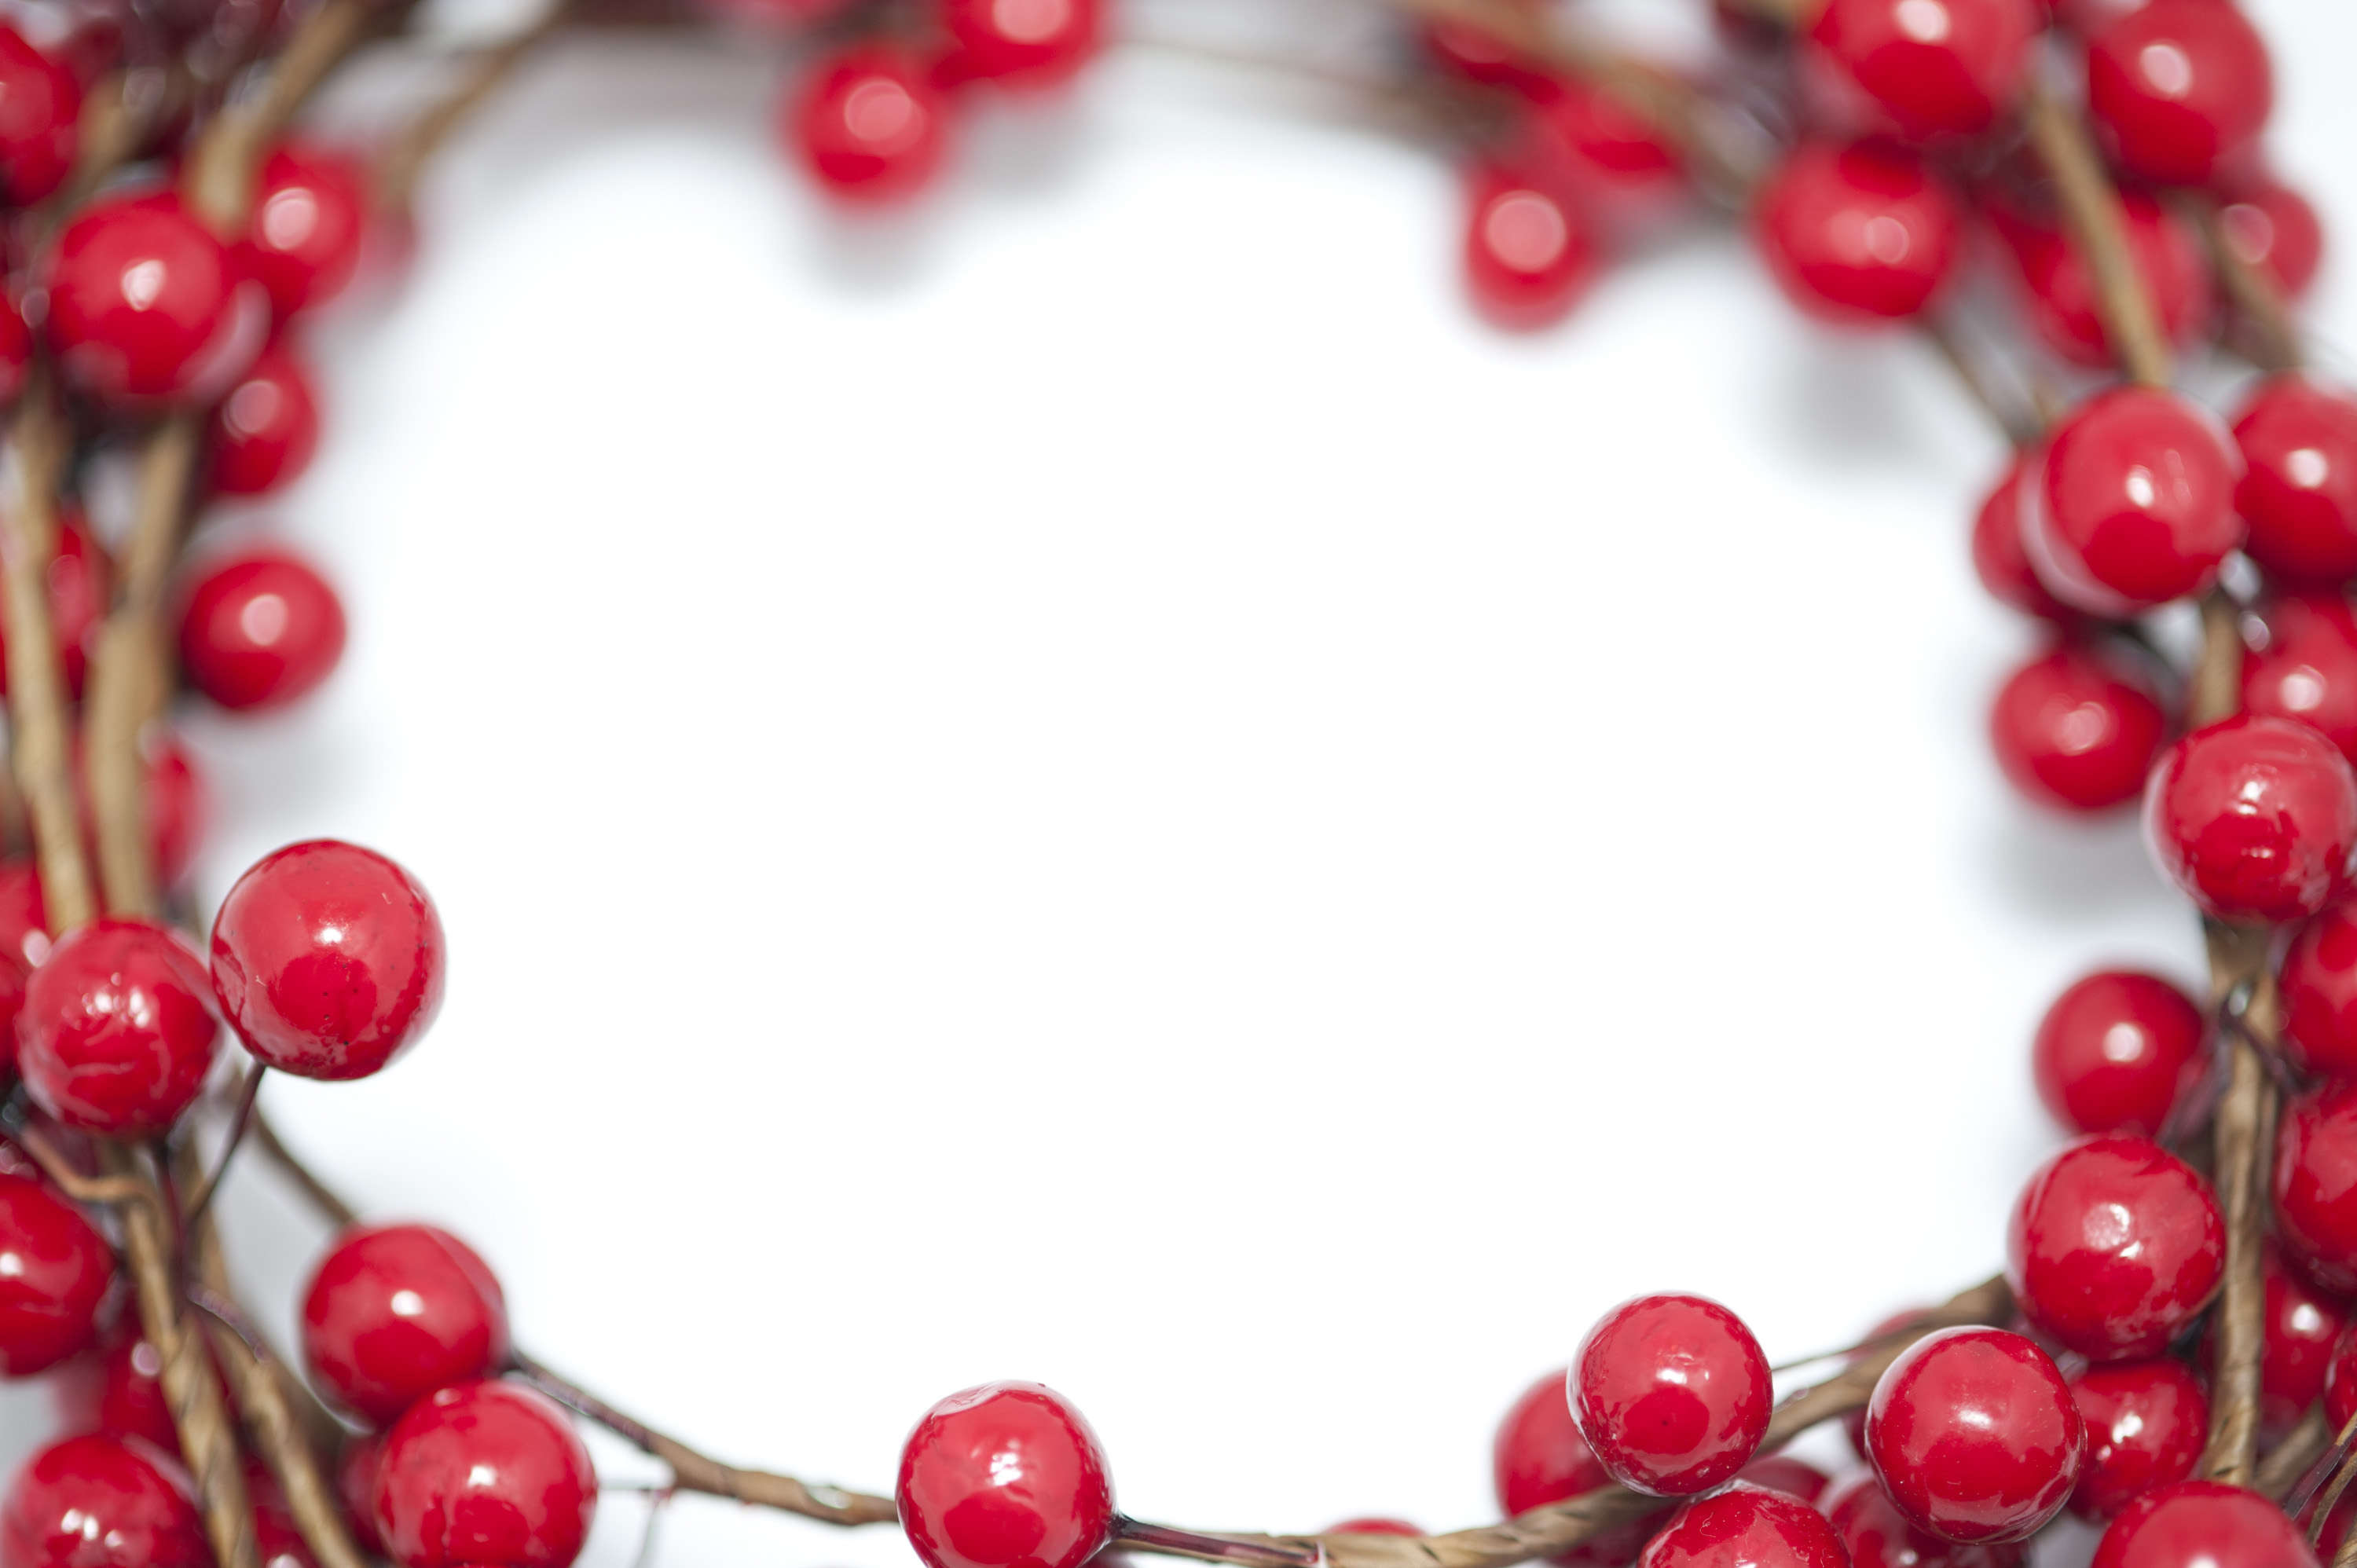 Red berry Christmas border arranged around a central blank white copy space for your seasonal greeting